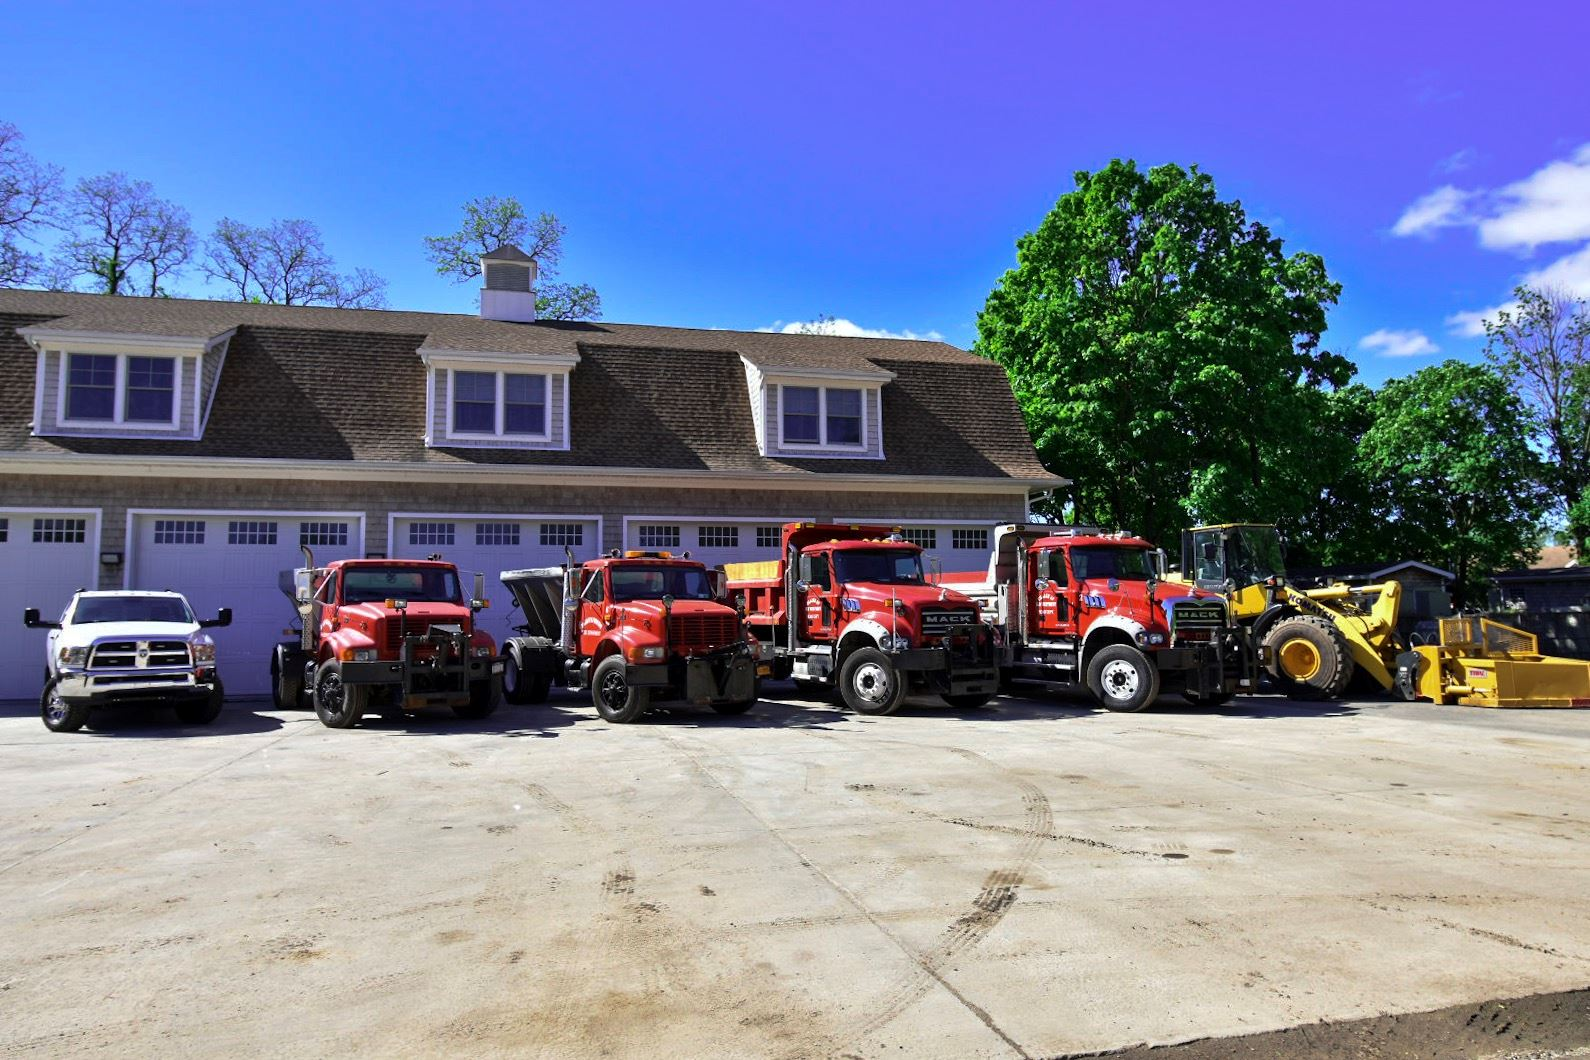 DPW Trucks Lined Up